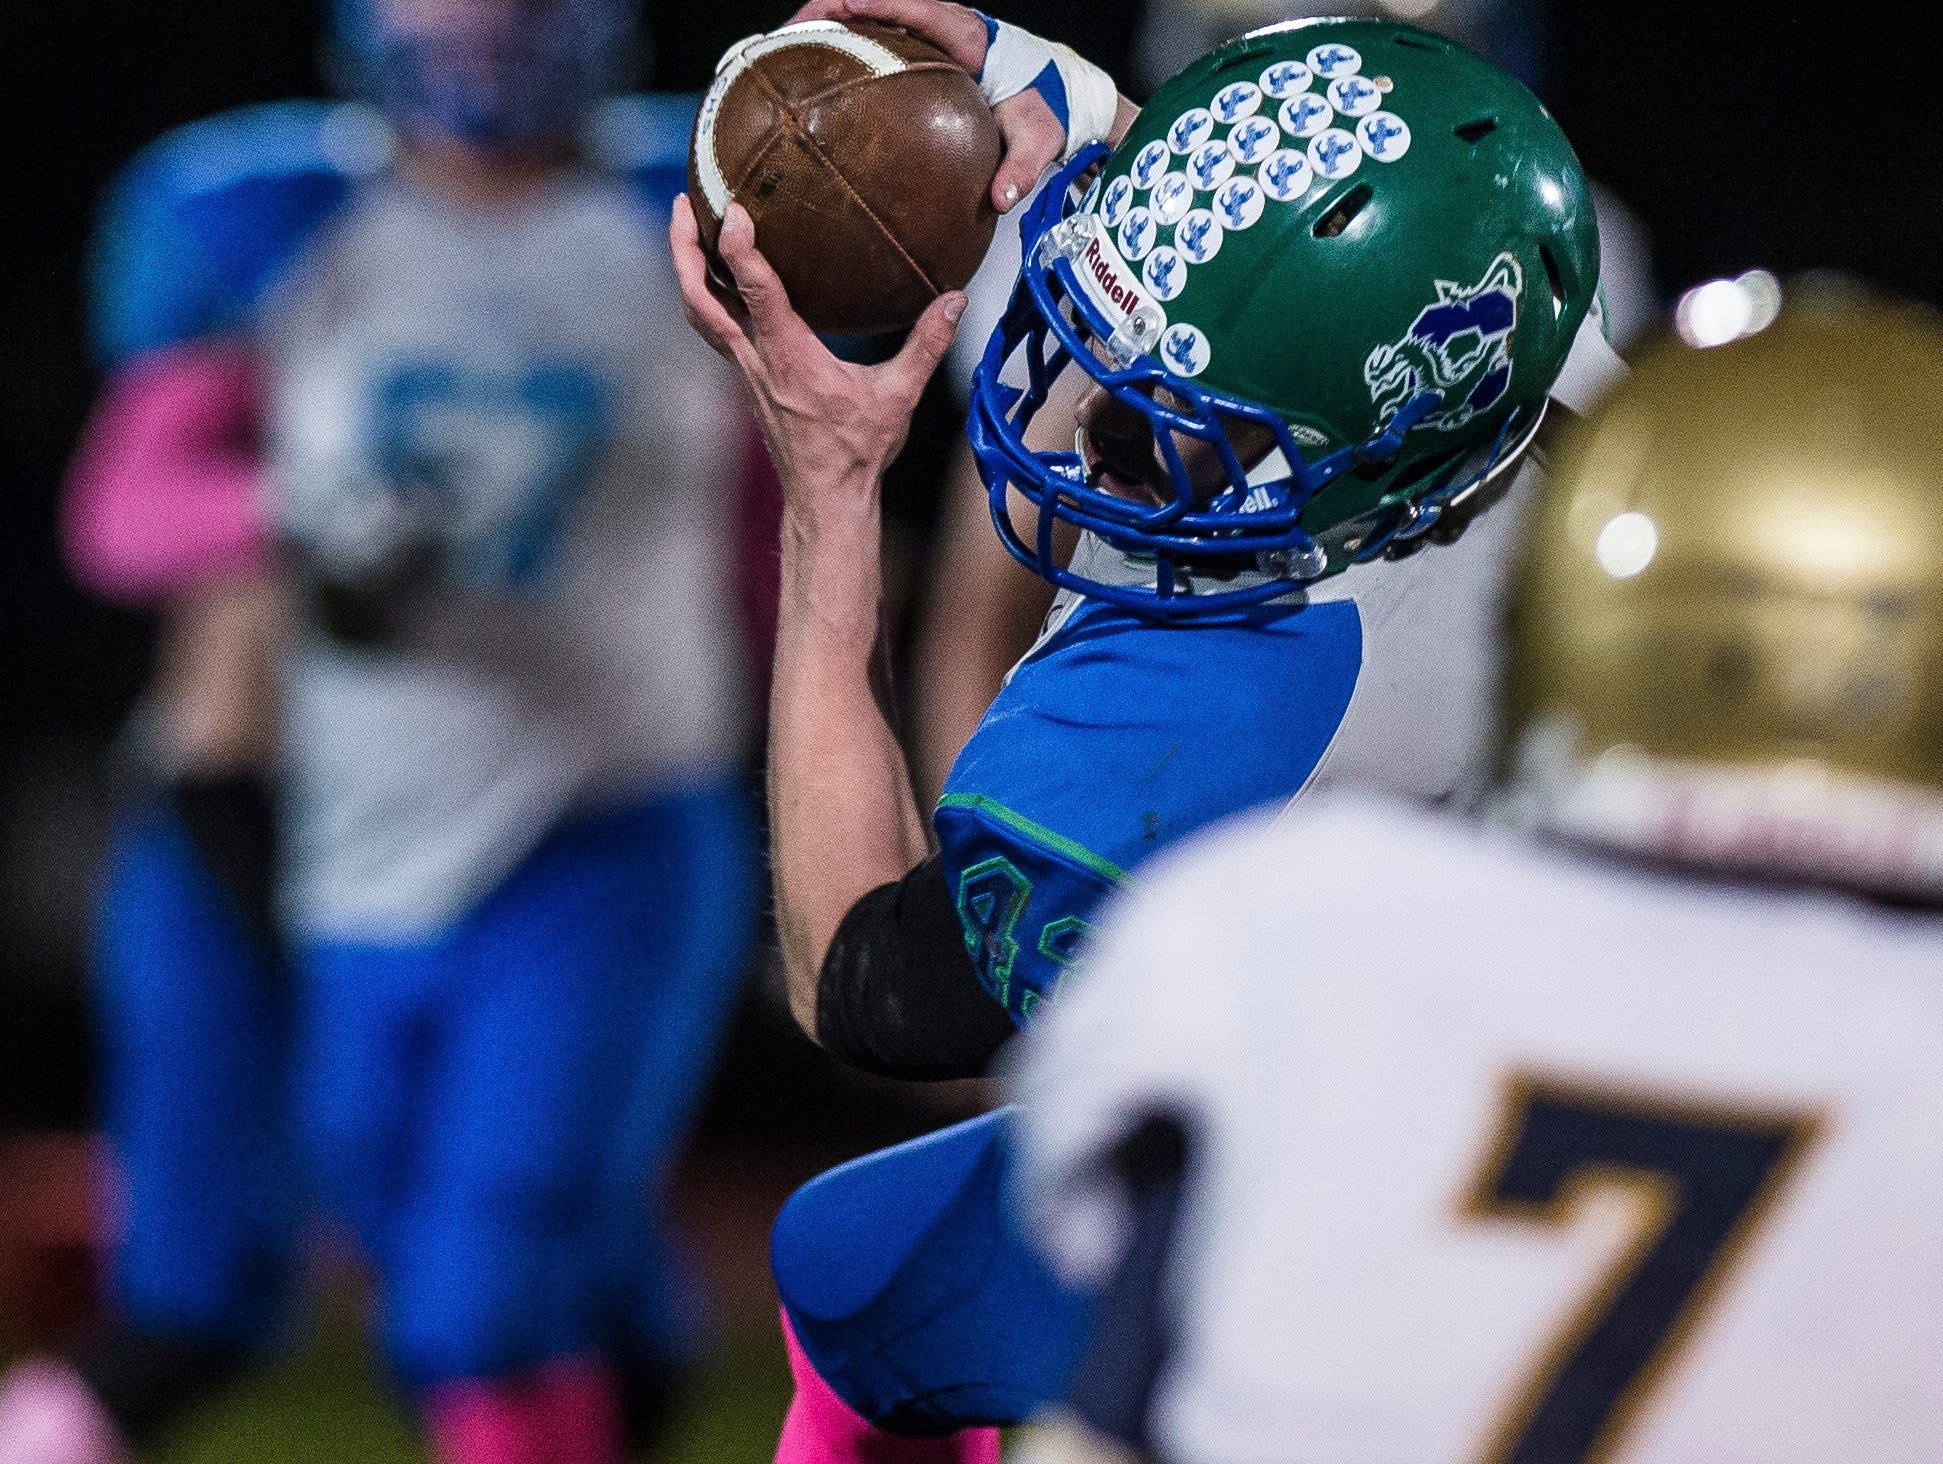 Colchester #43 Max Anderson snags the pass during their football game against Essex on Friday night, Oct. 5, 2018, at Colchester High School. The Lakers won, 28-7.